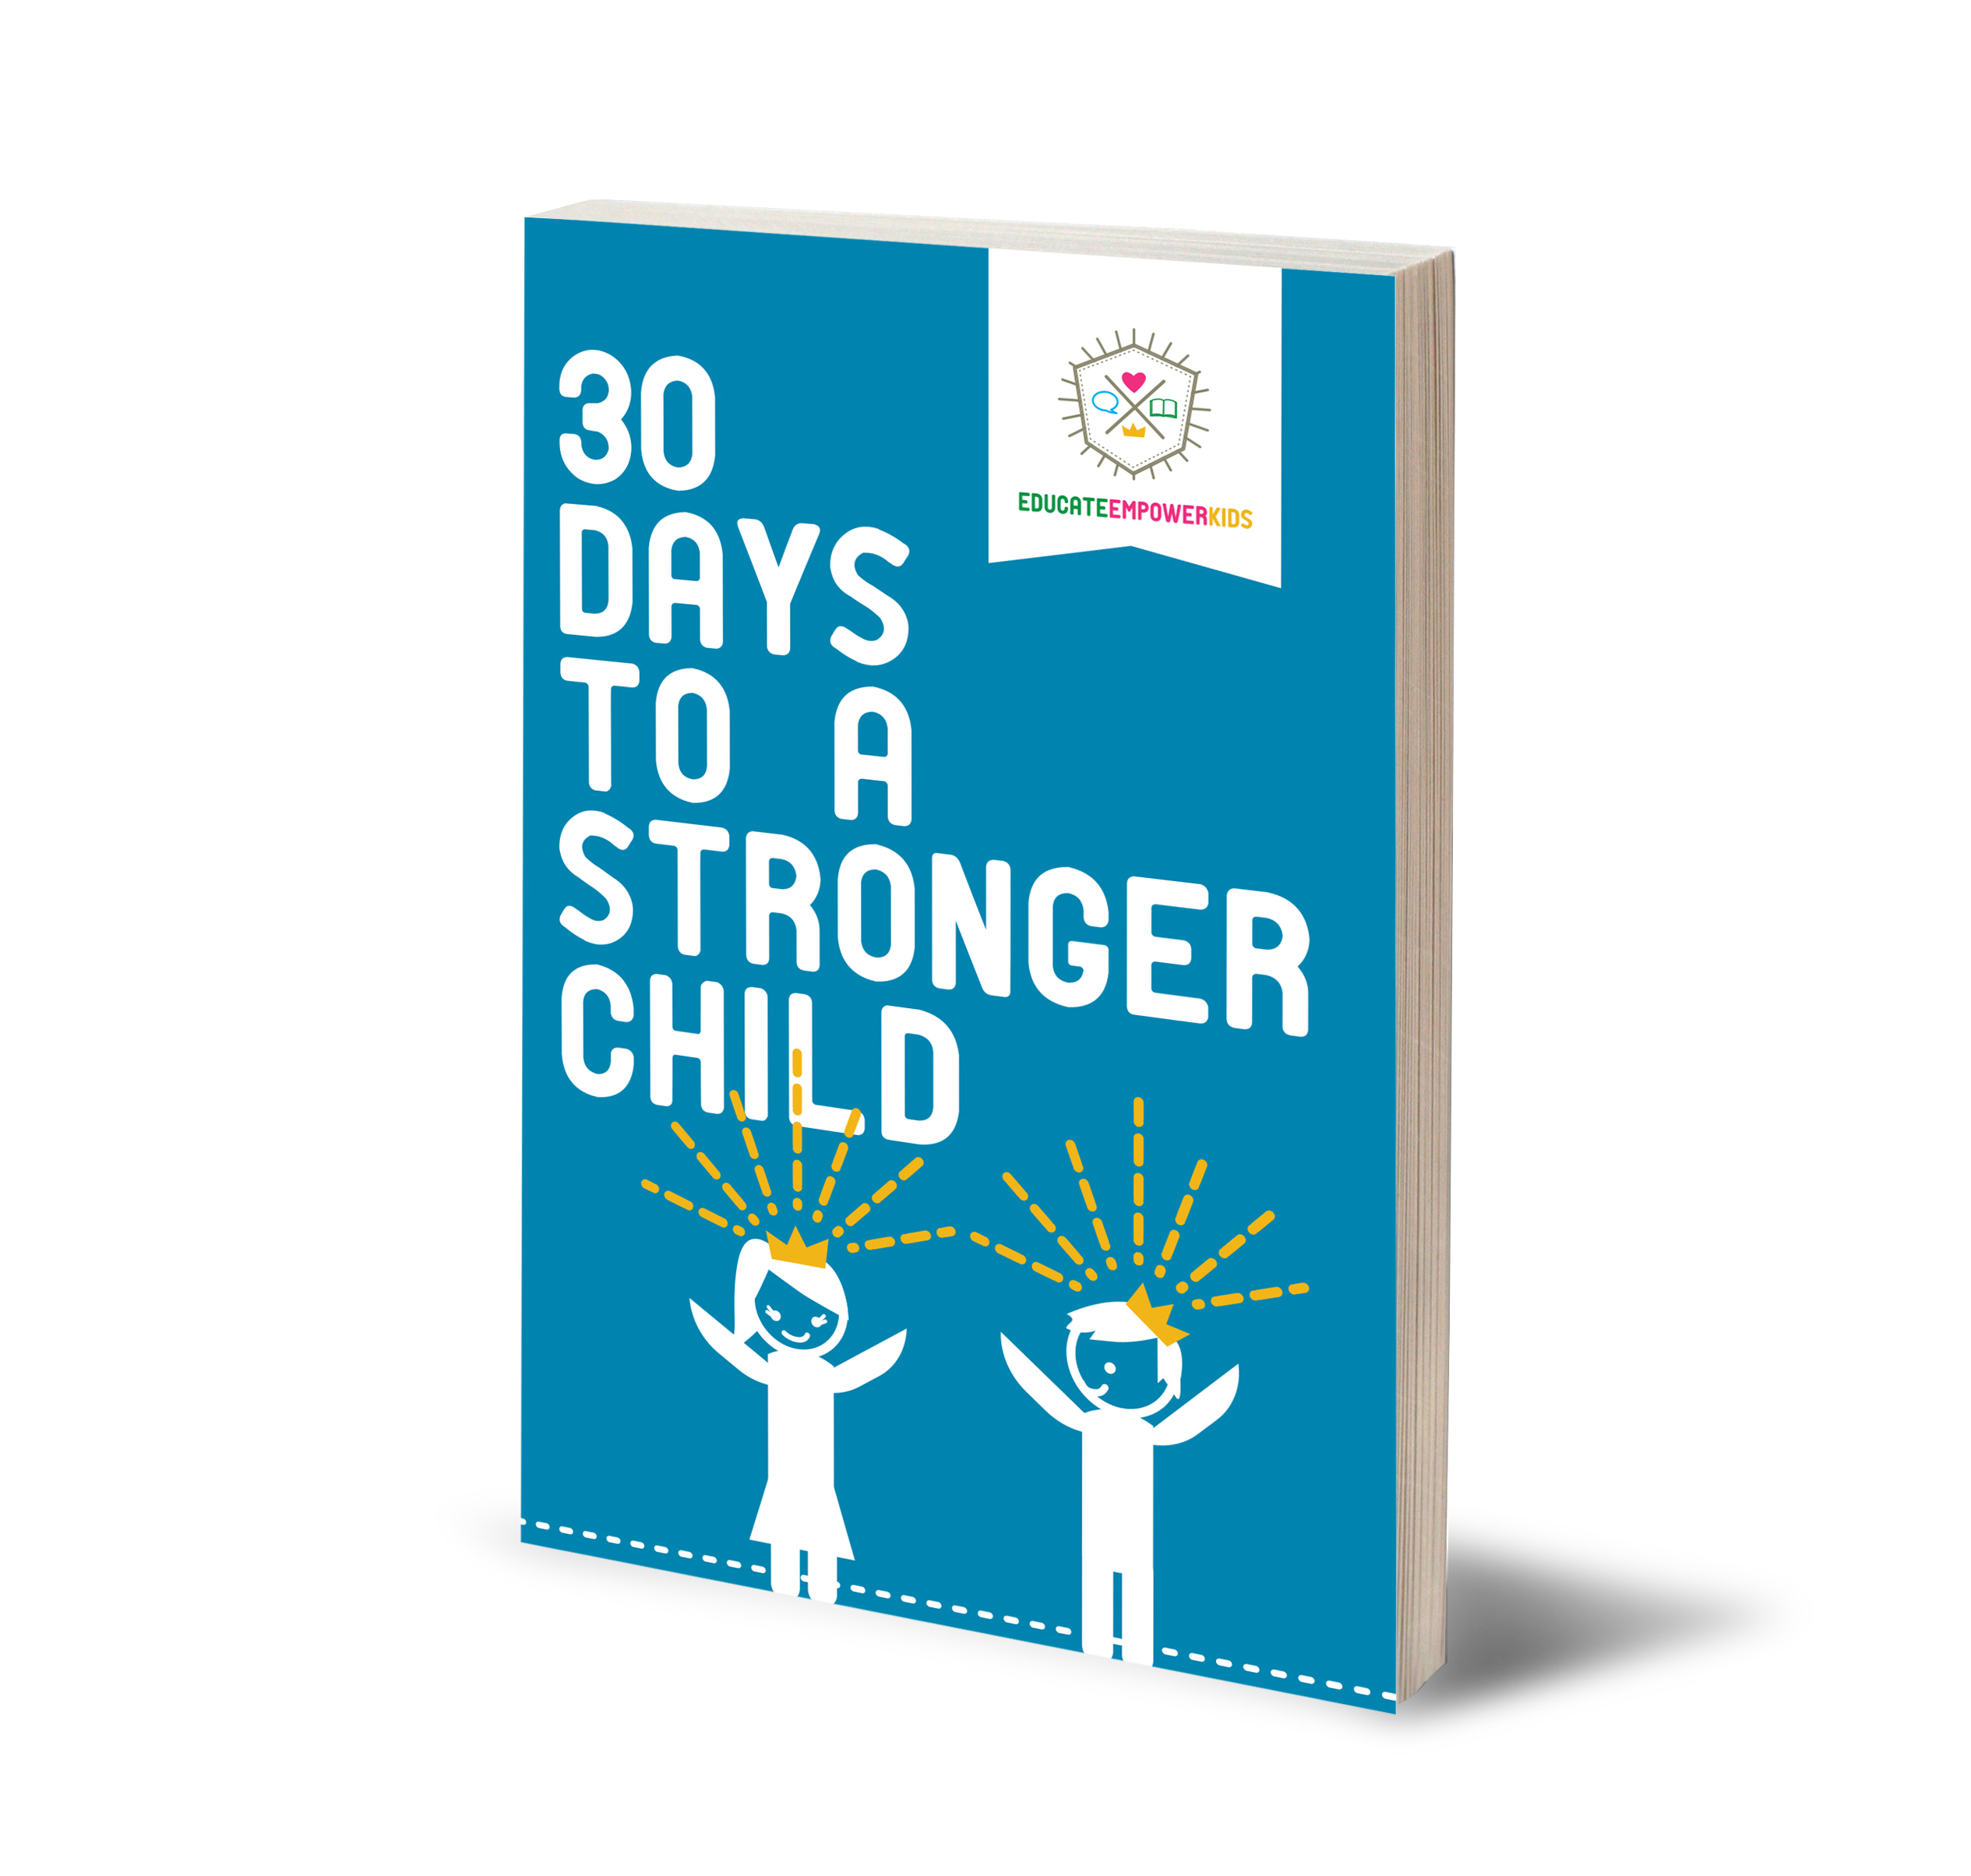 Introducing 30 Days to a Stronger Child